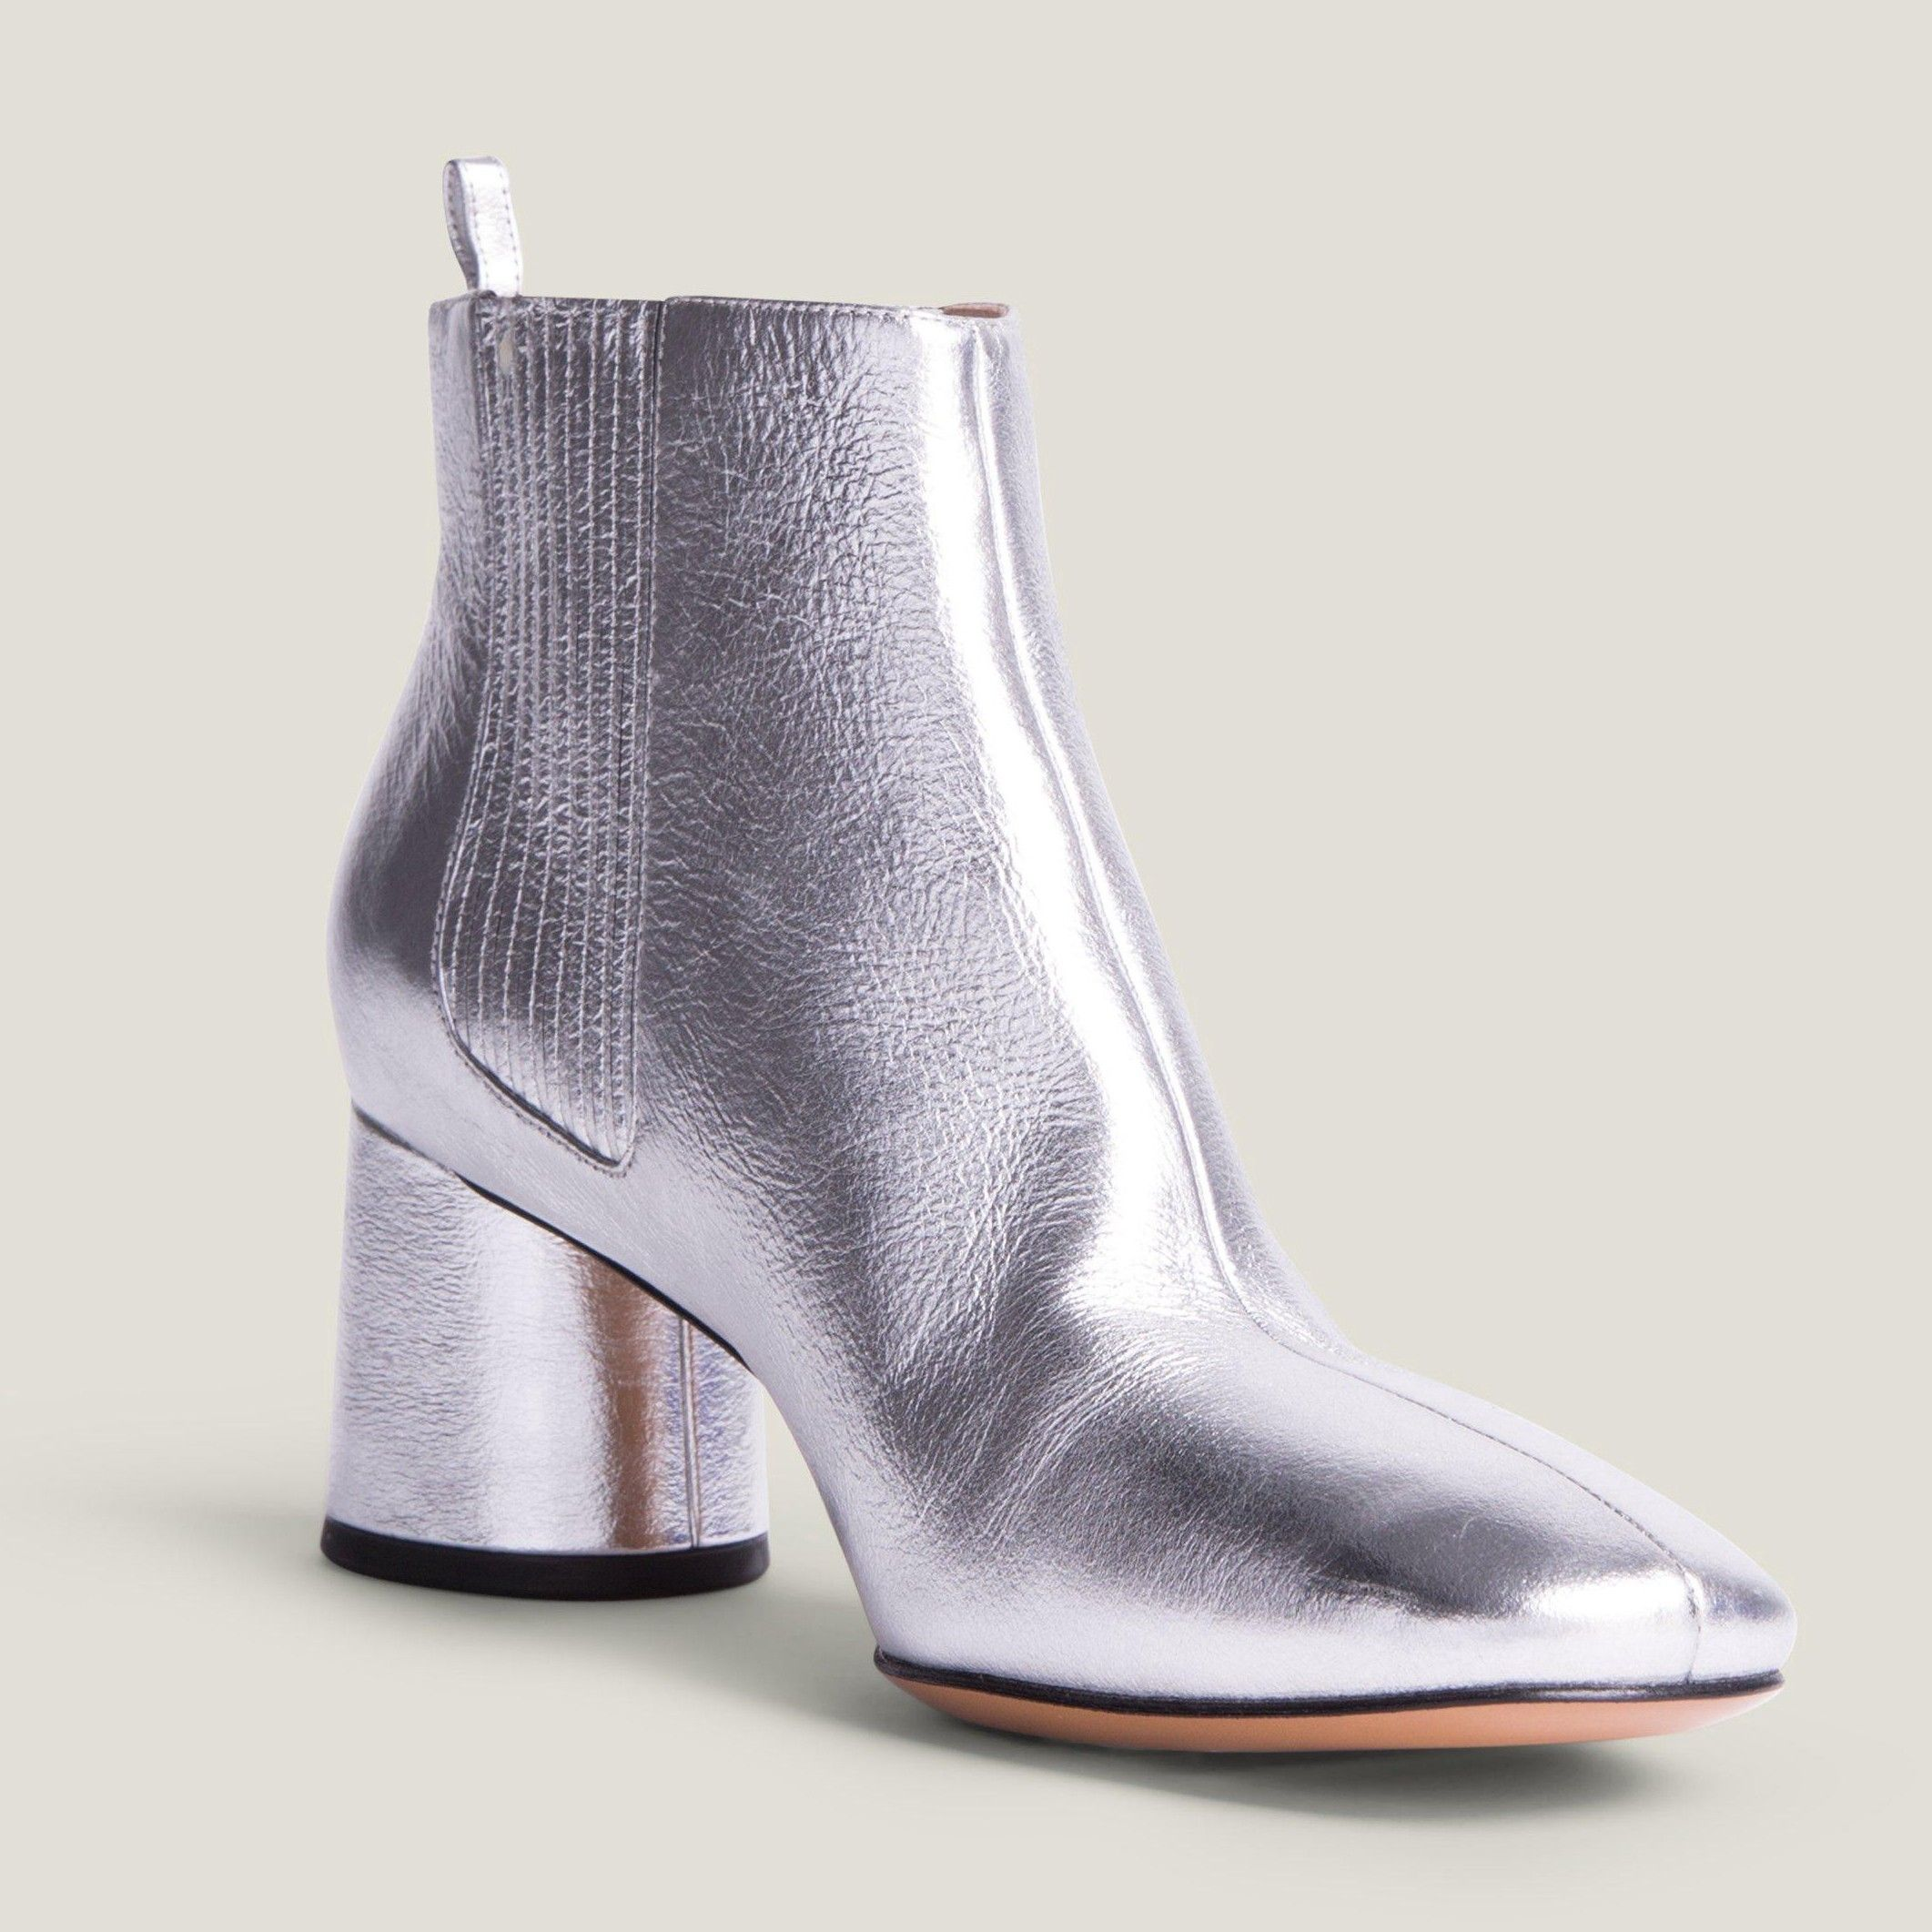 Silver Rocket Chelsea Boots Marc Jacobs Outlet The Cheapest Cheap Release Dates Low Price Fee Shipping Drop Shipping Professional AgjycL